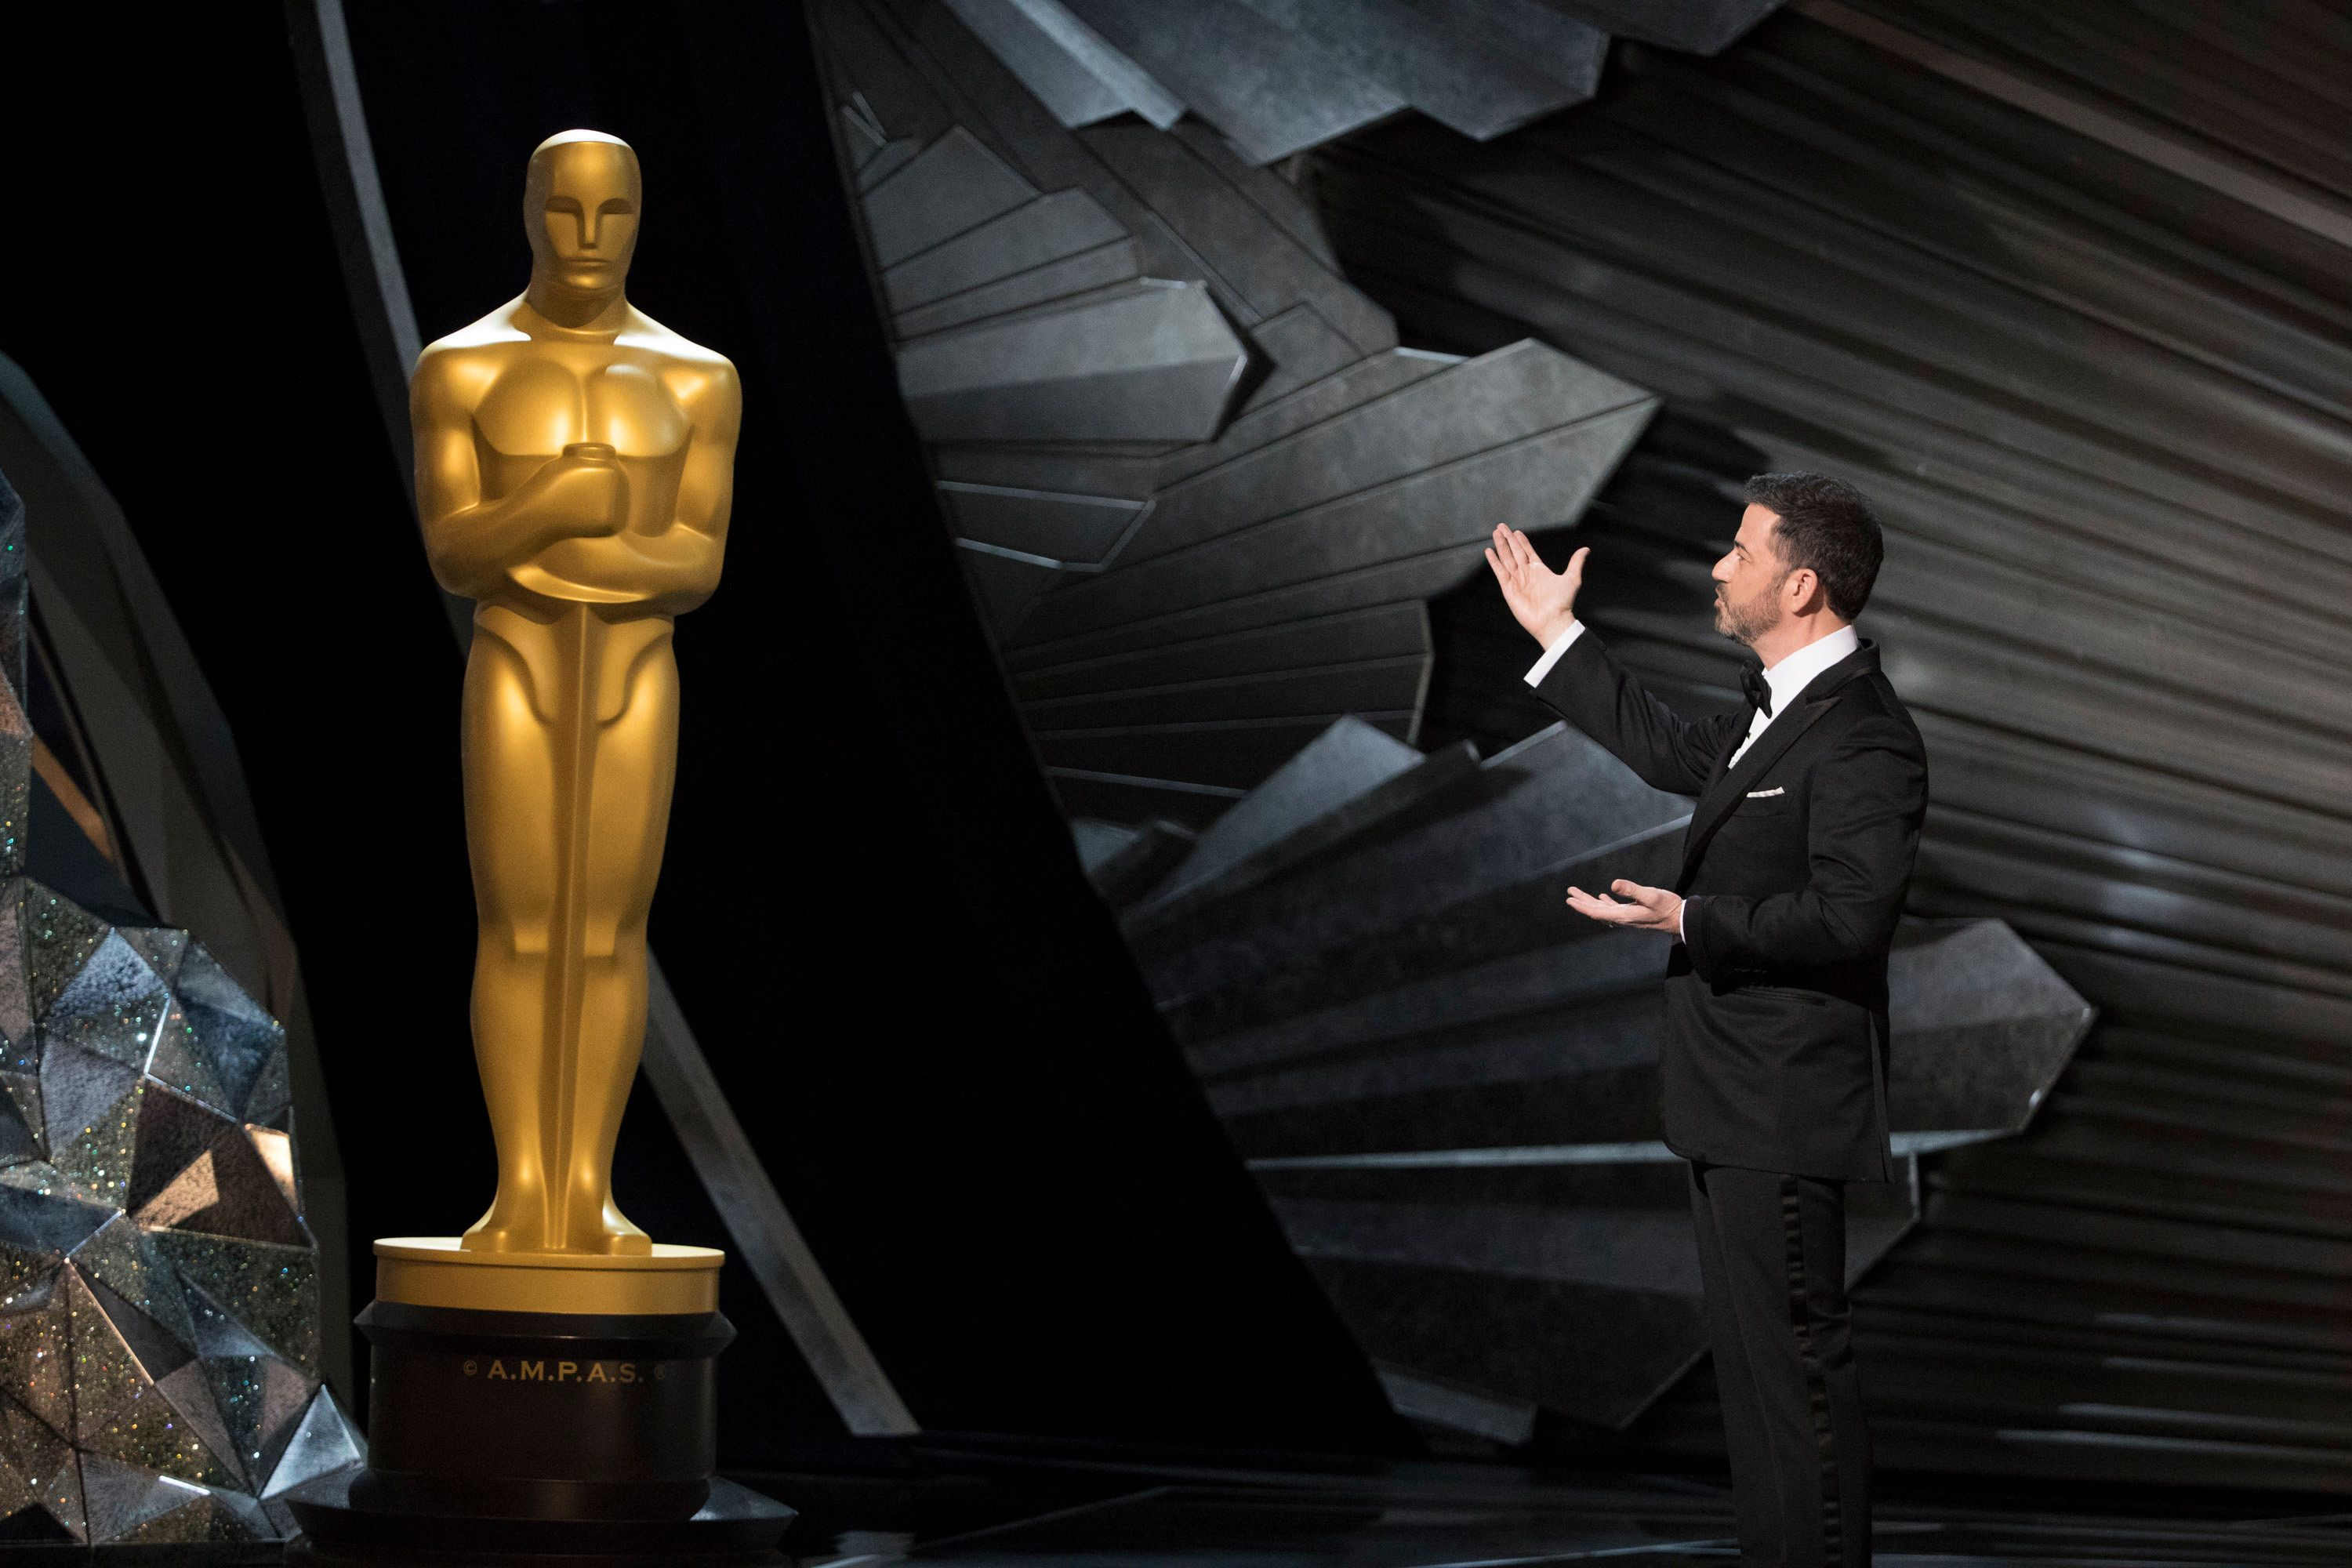 THE OSCARS(r) - The 90th Oscars(r)  broadcasts live on Oscar(r) SUNDAY, MARCH 4, 2018, at the Dolby Theatre® at Hollywood & Highland Center® in Hollywood, on the ABC Television Network. (Ed Herrera via Getty Images) JIMMY KIMMEL